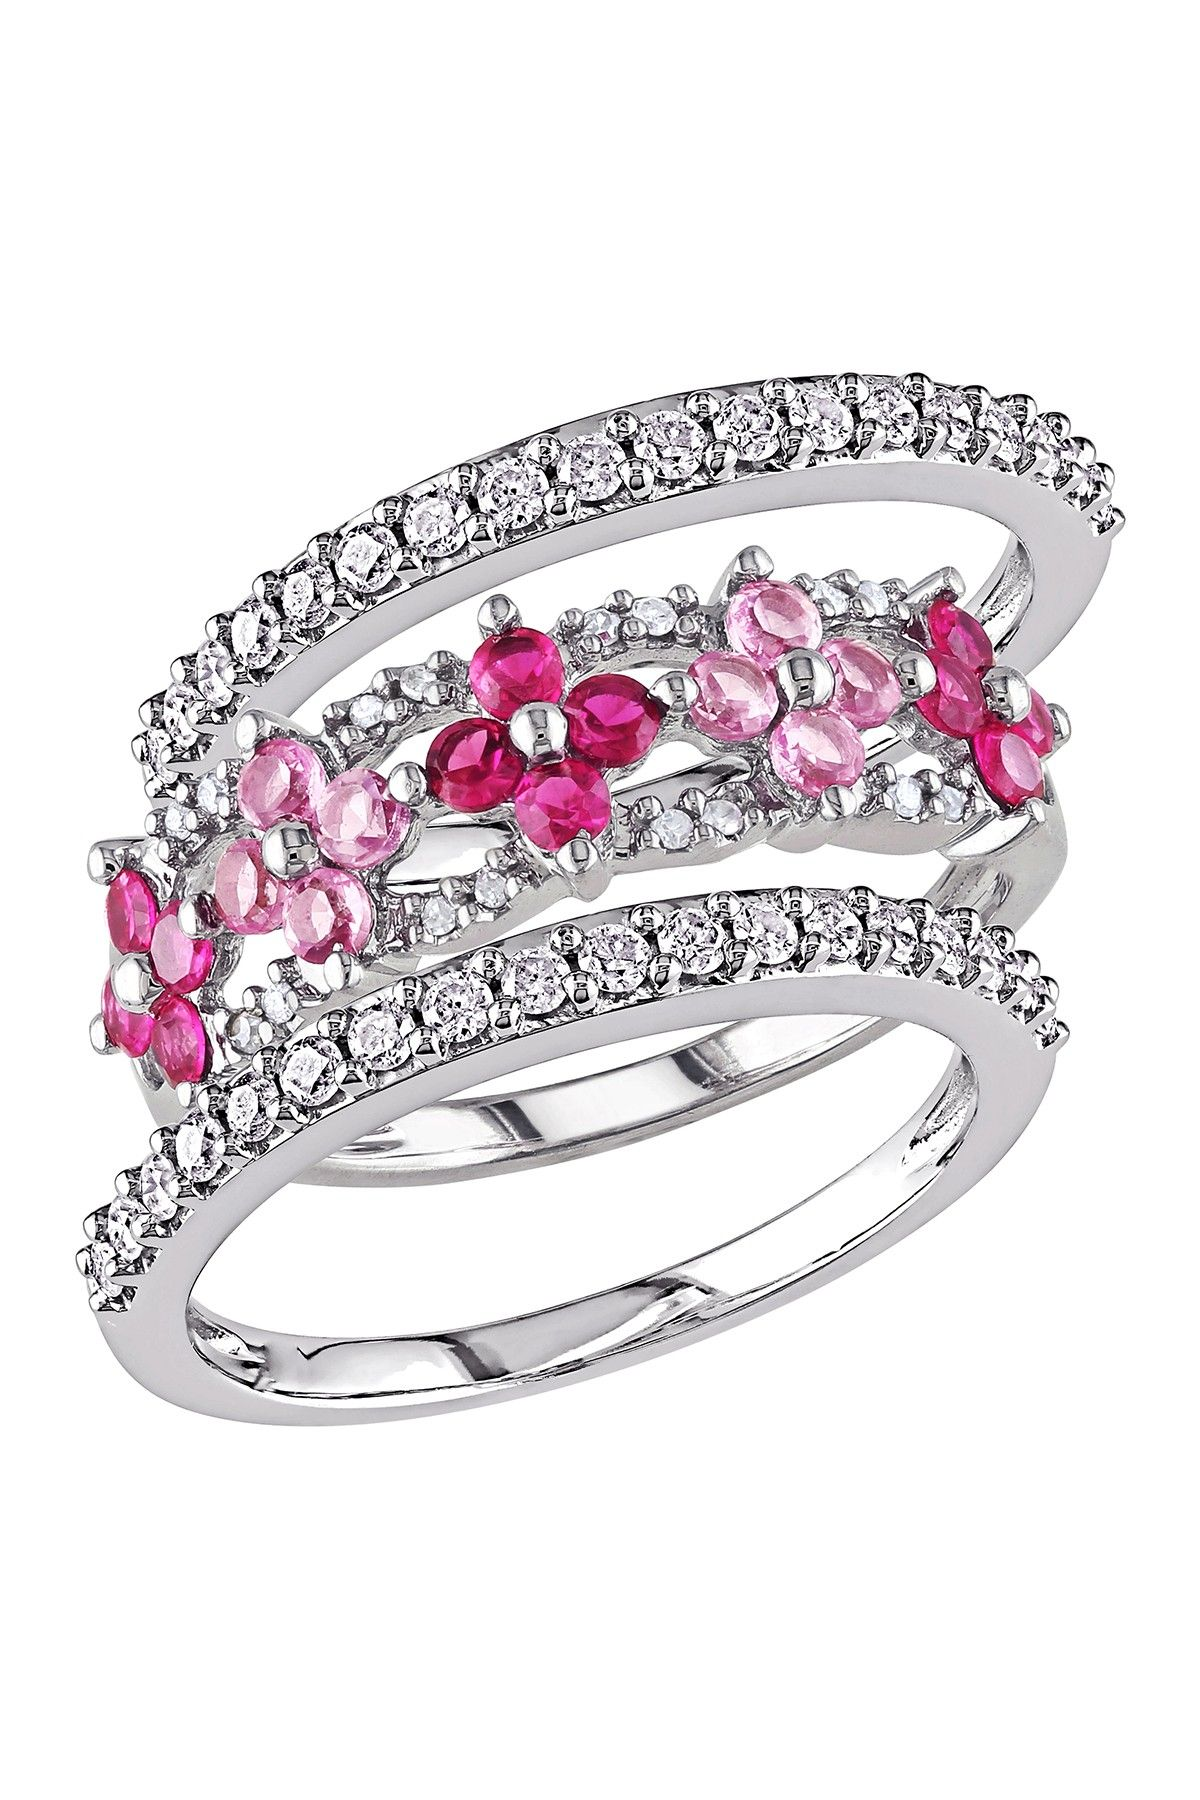 Delmar 10k White Gold White Diamond Created Ruby Created Pink Sapphire Flower Ring Set Hautelook Jewelry Beautiful Jewelry Pink Sapphire